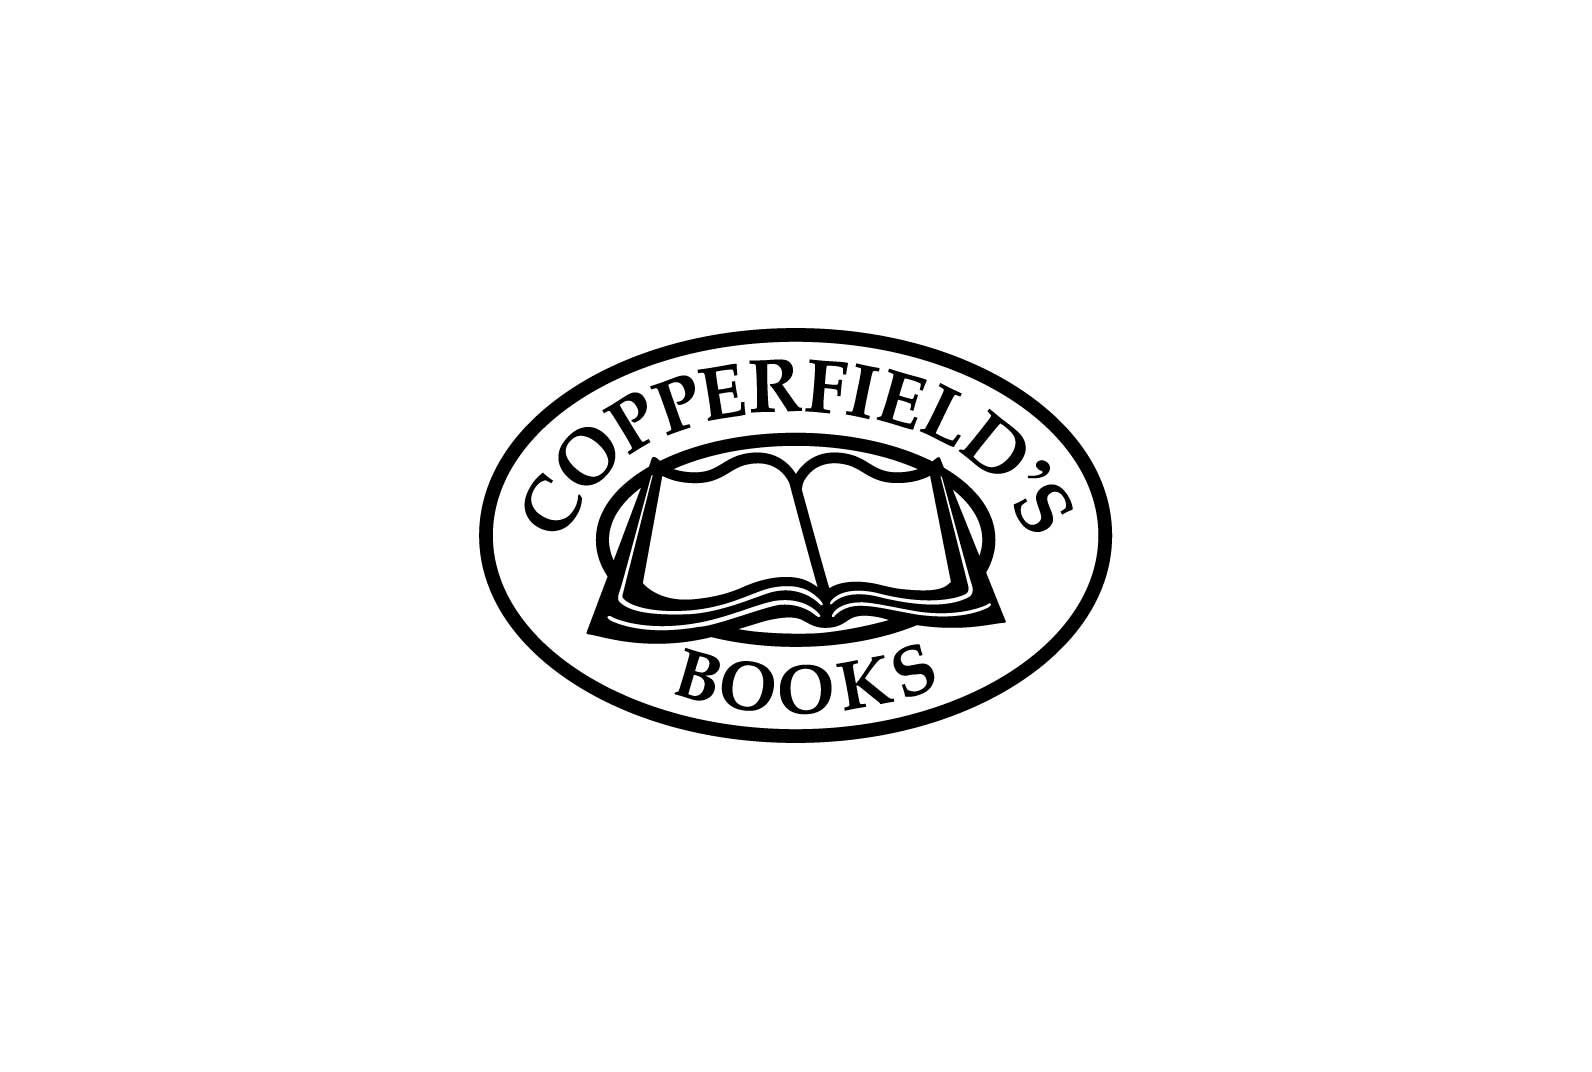 copperfields_logo-copy